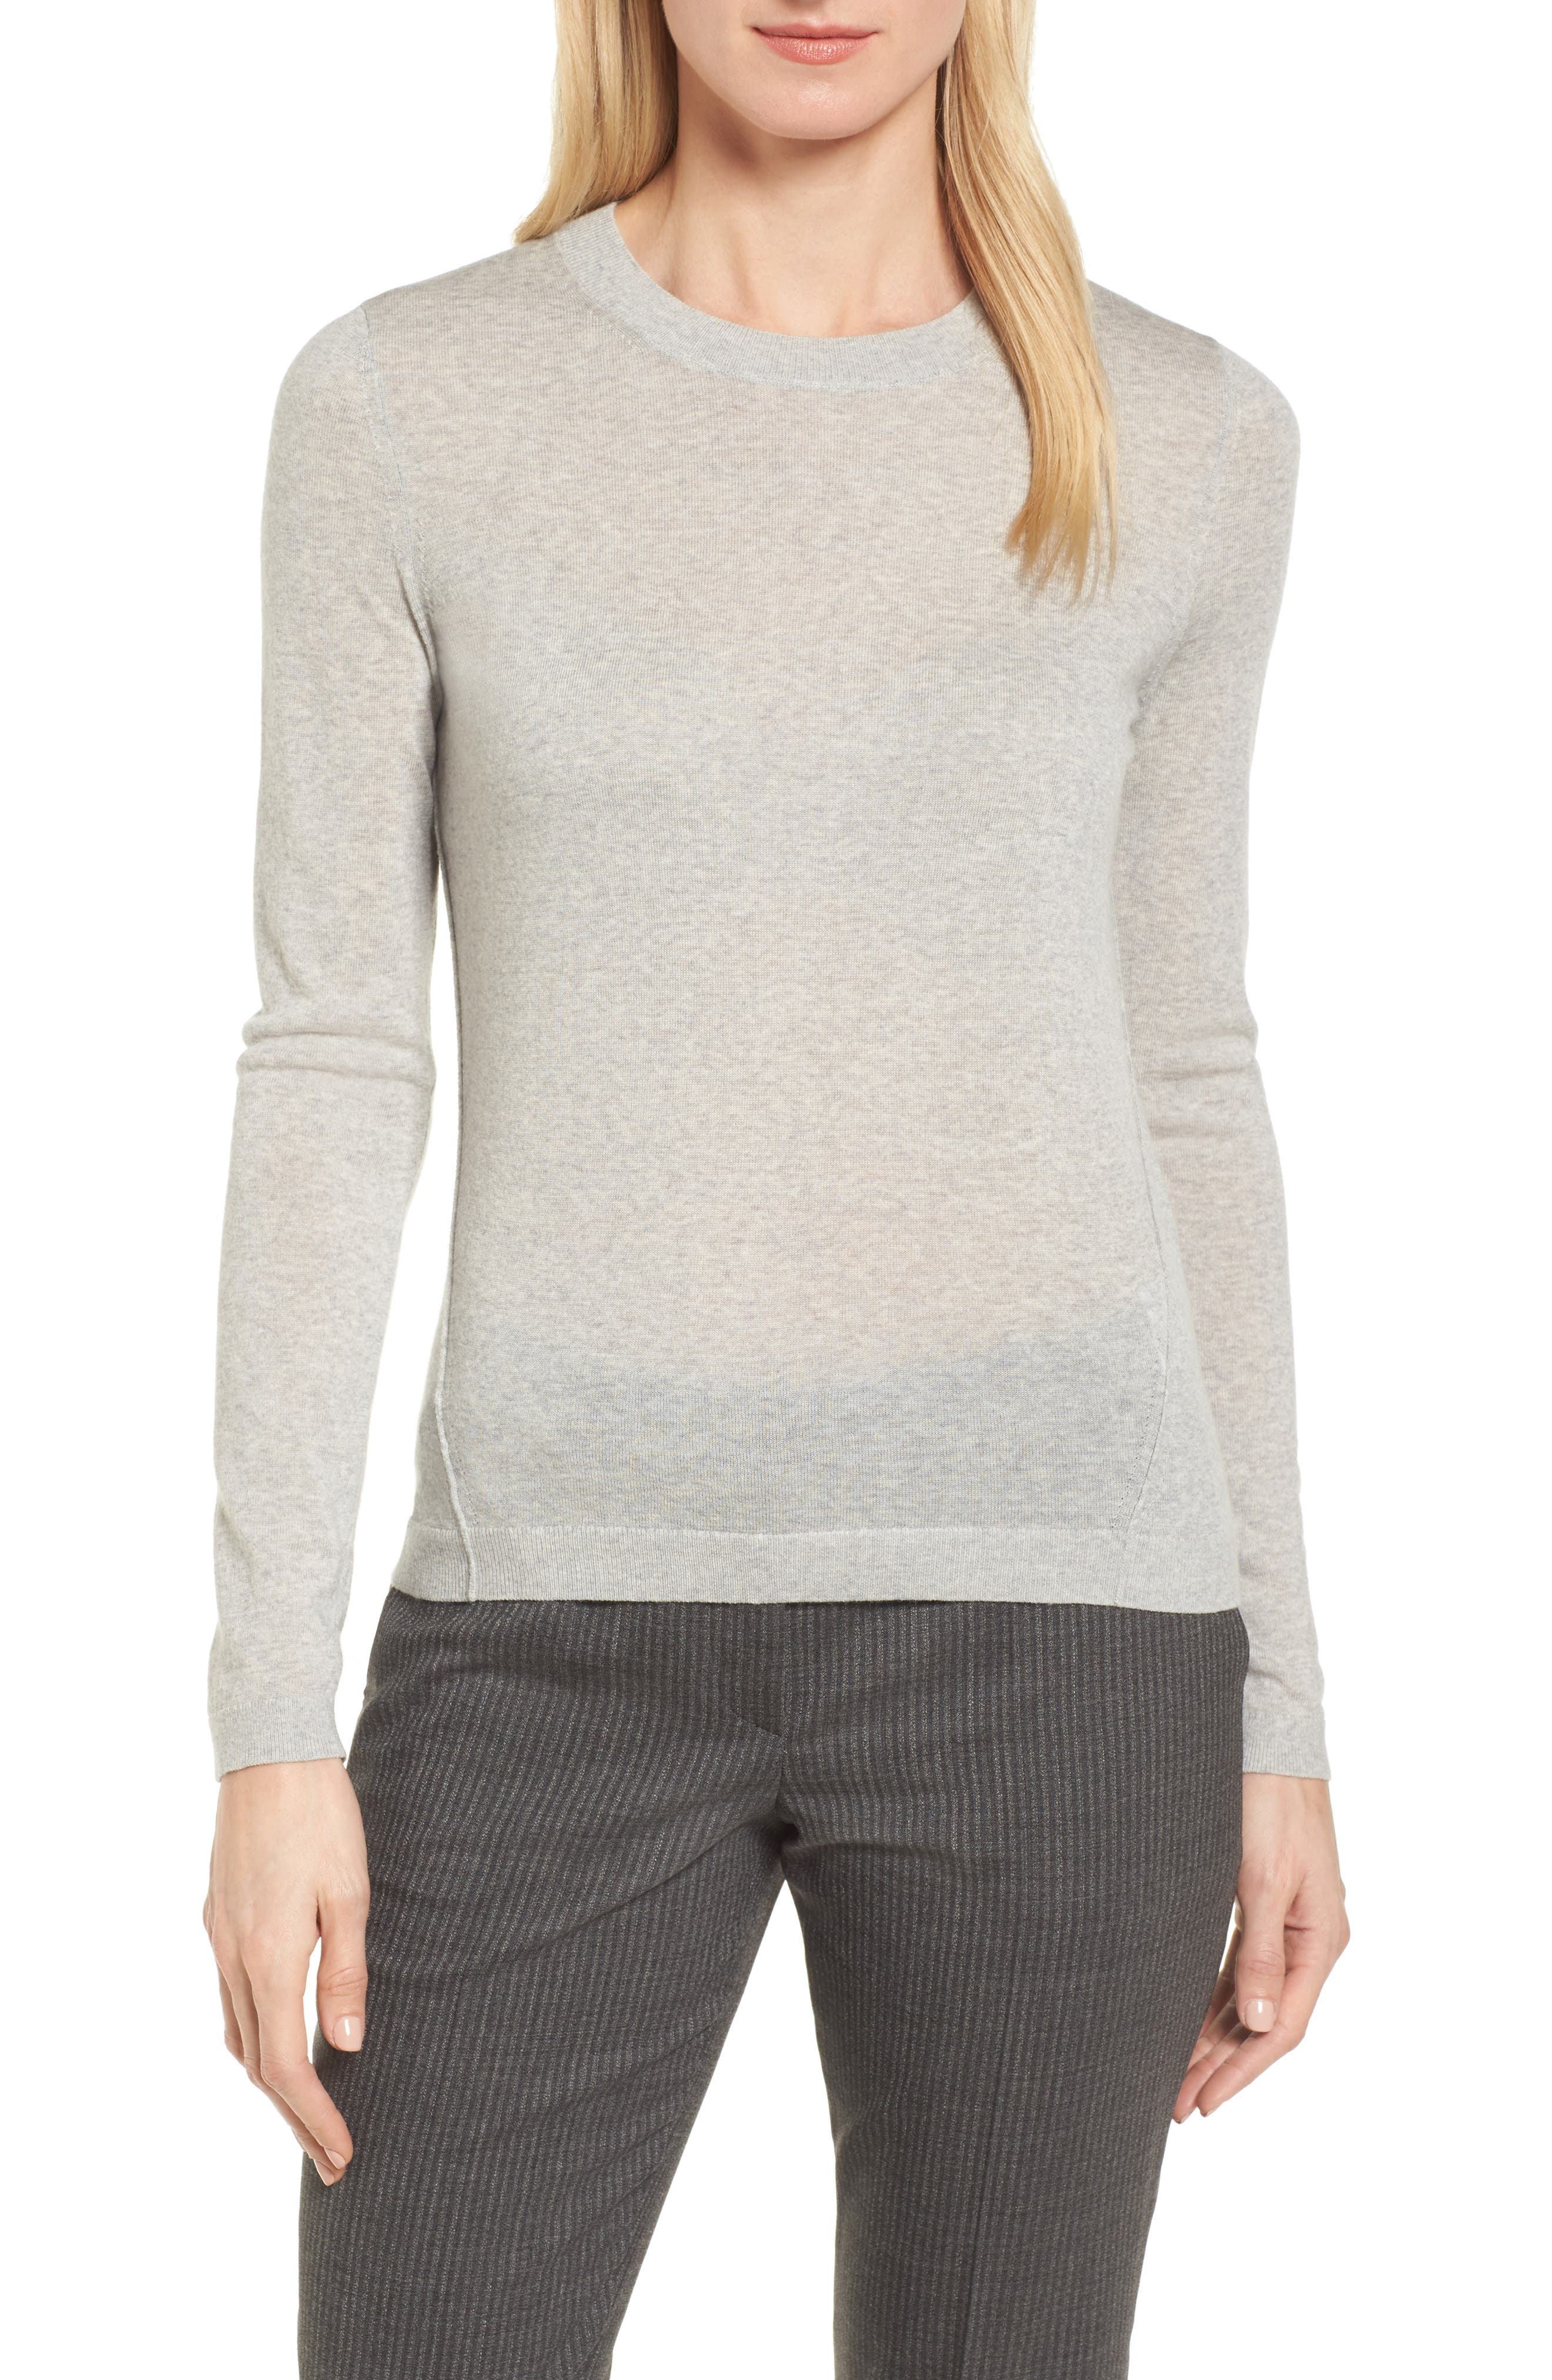 Fayme Wool Crewneck Sweater,                         Main,                         color, 057